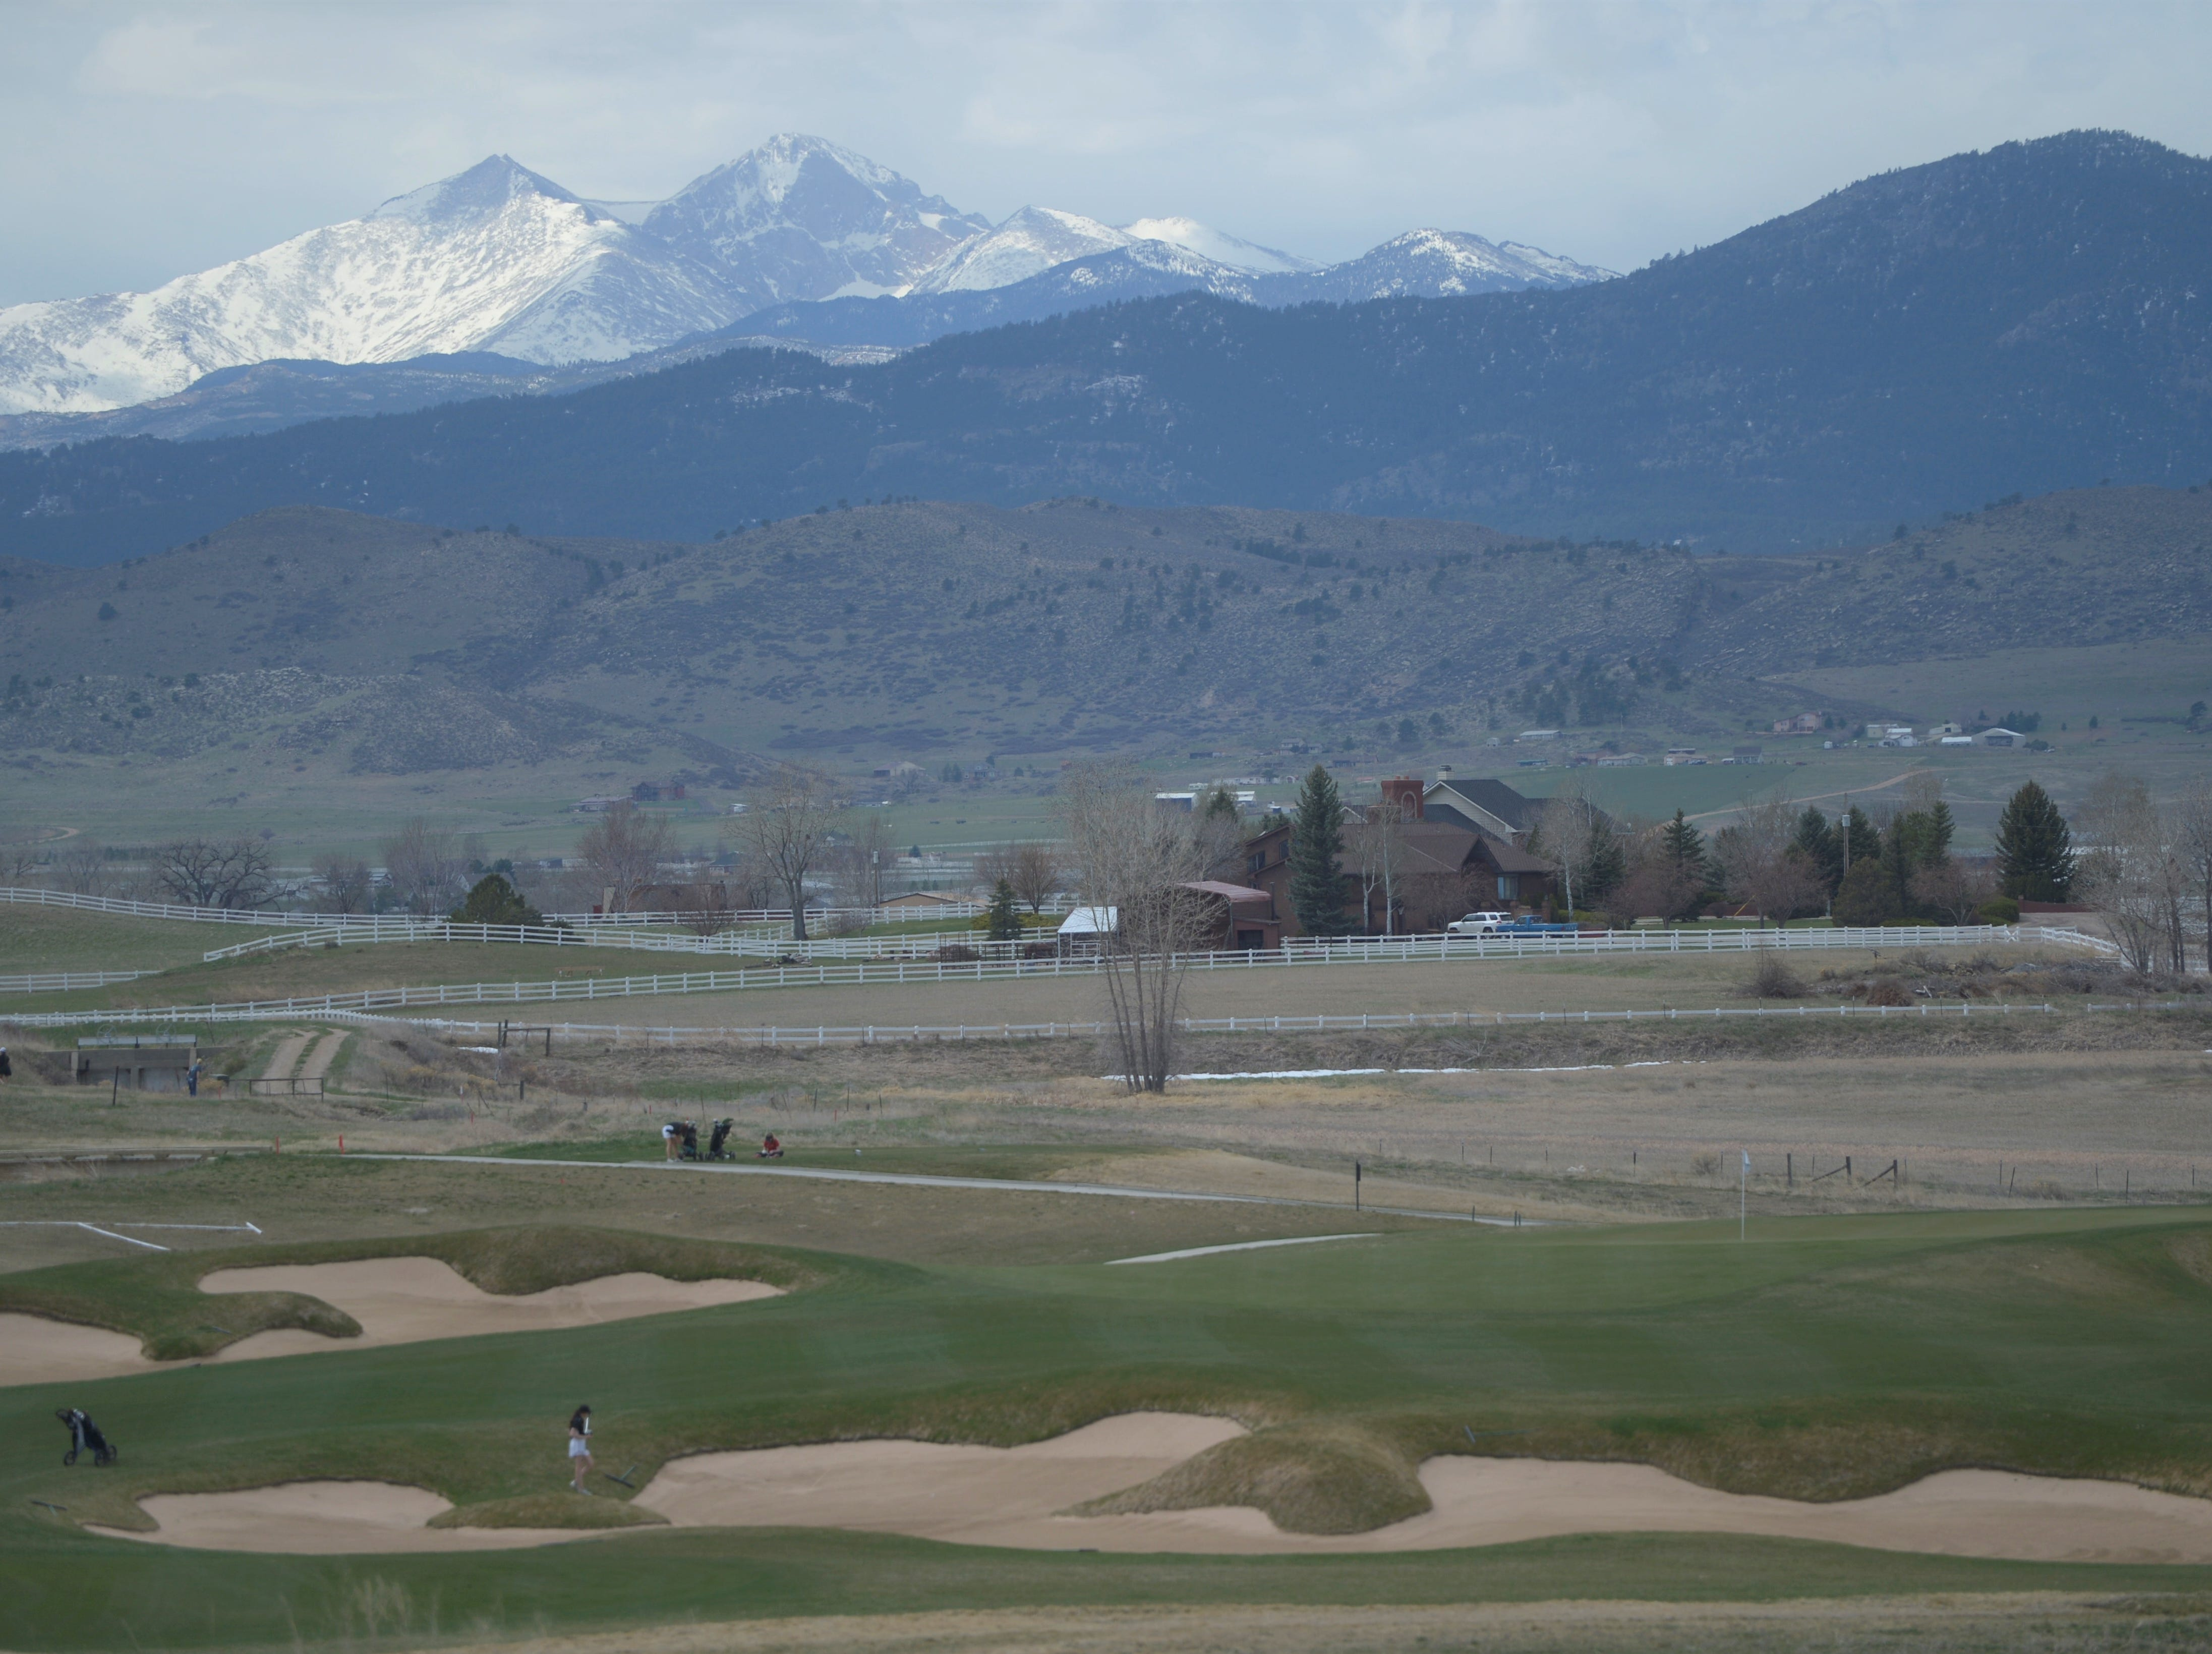 A look at the scenic TPC Colorado golf course in Berthoud.